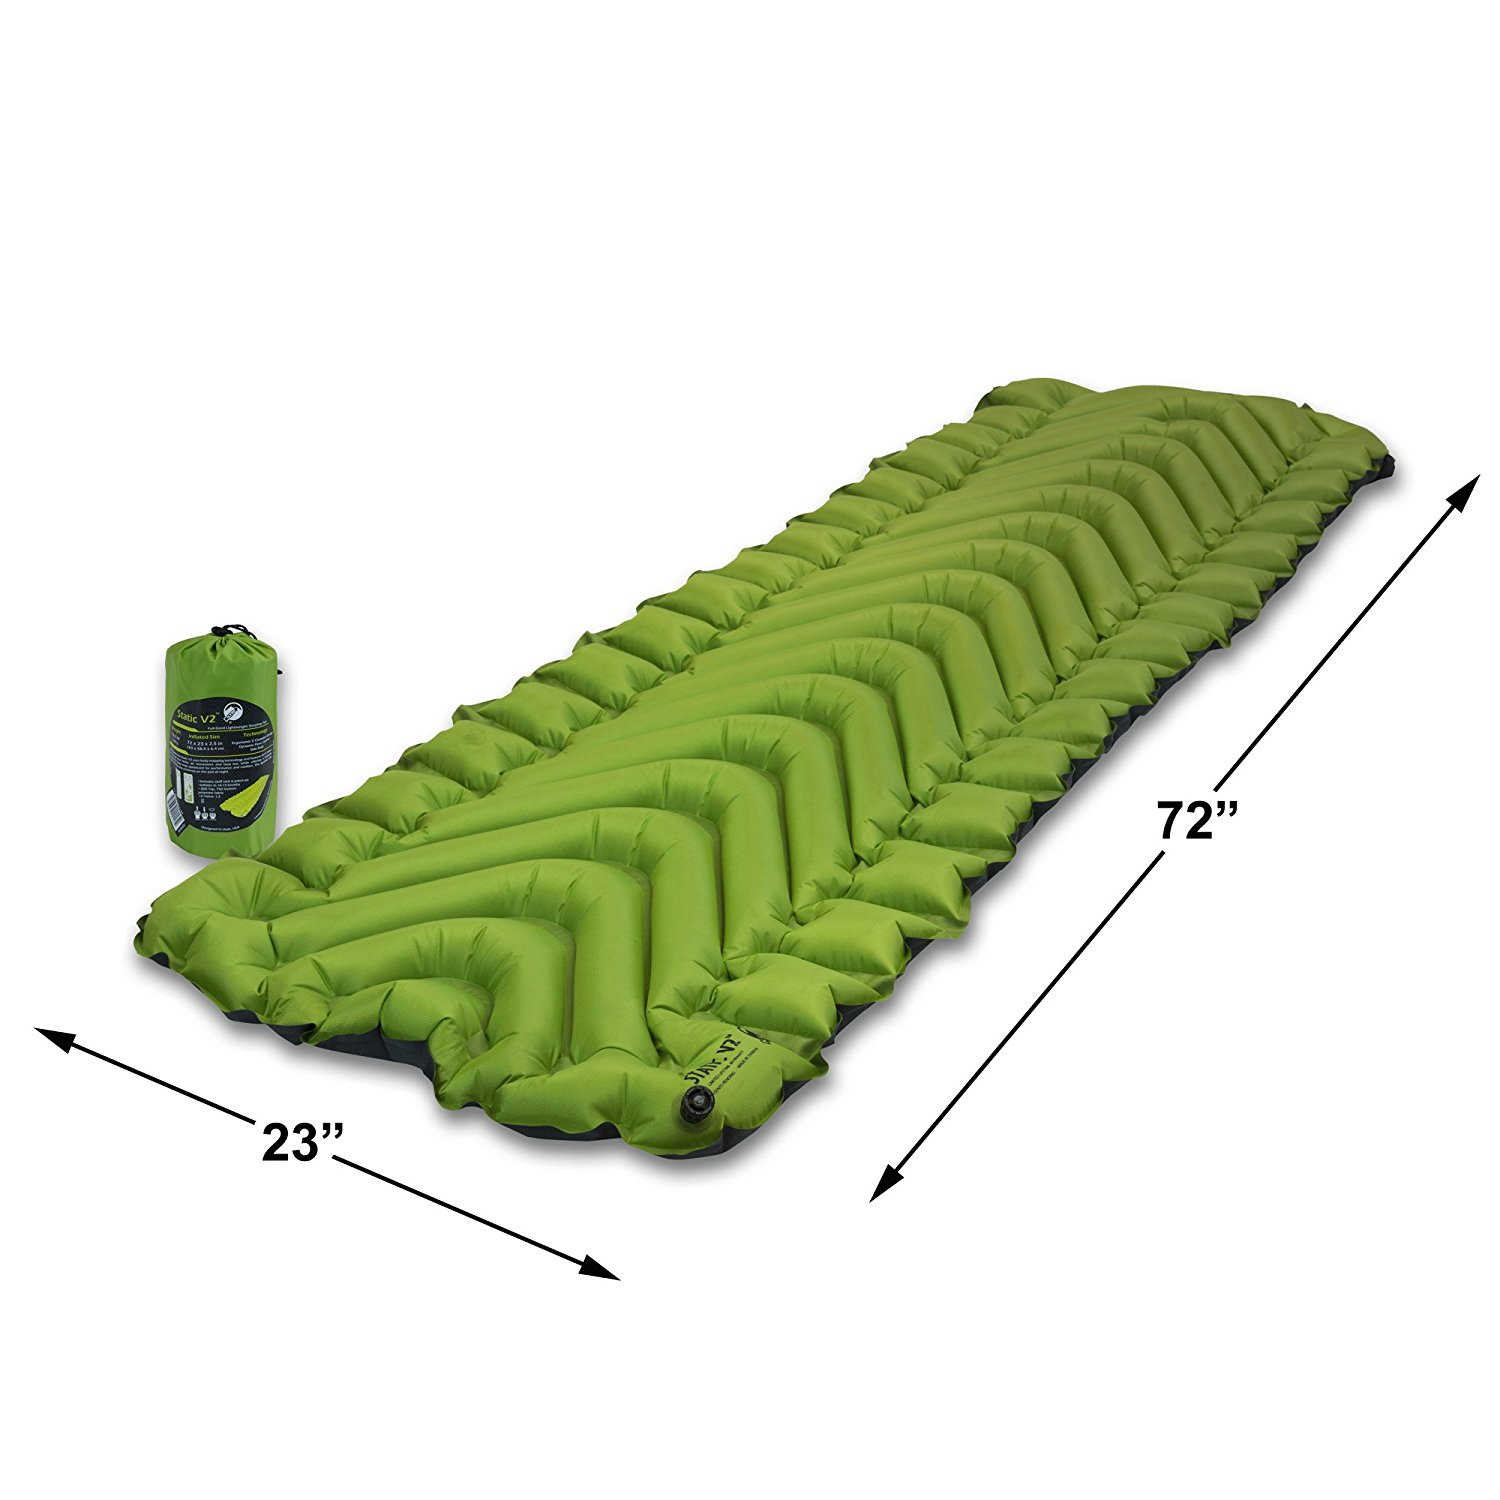 Klymit Static V2 Best Air Mattress For Camping Review by www.snoremagazine.com